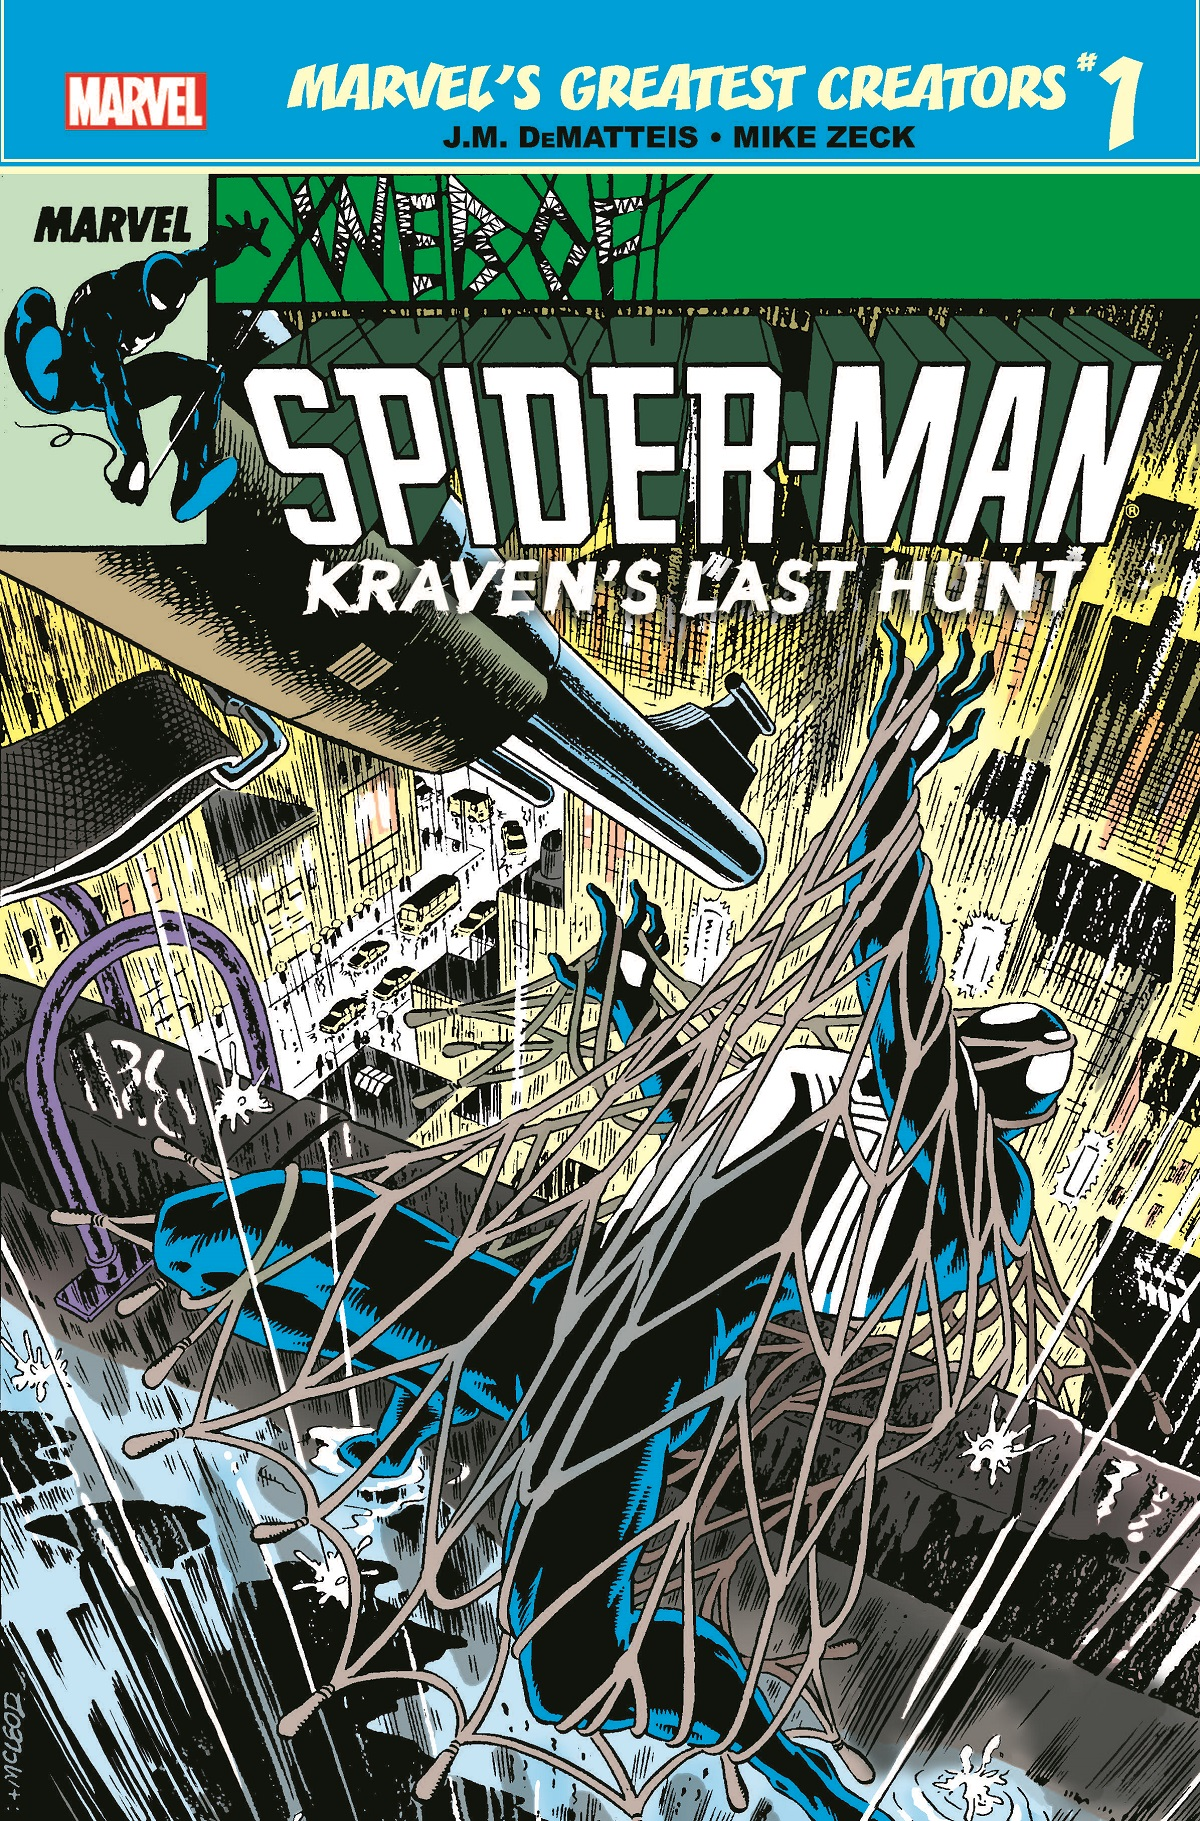 Marvel's Greatest Creators: Spider-Man - Kraven's Last Hunt (2019) #1